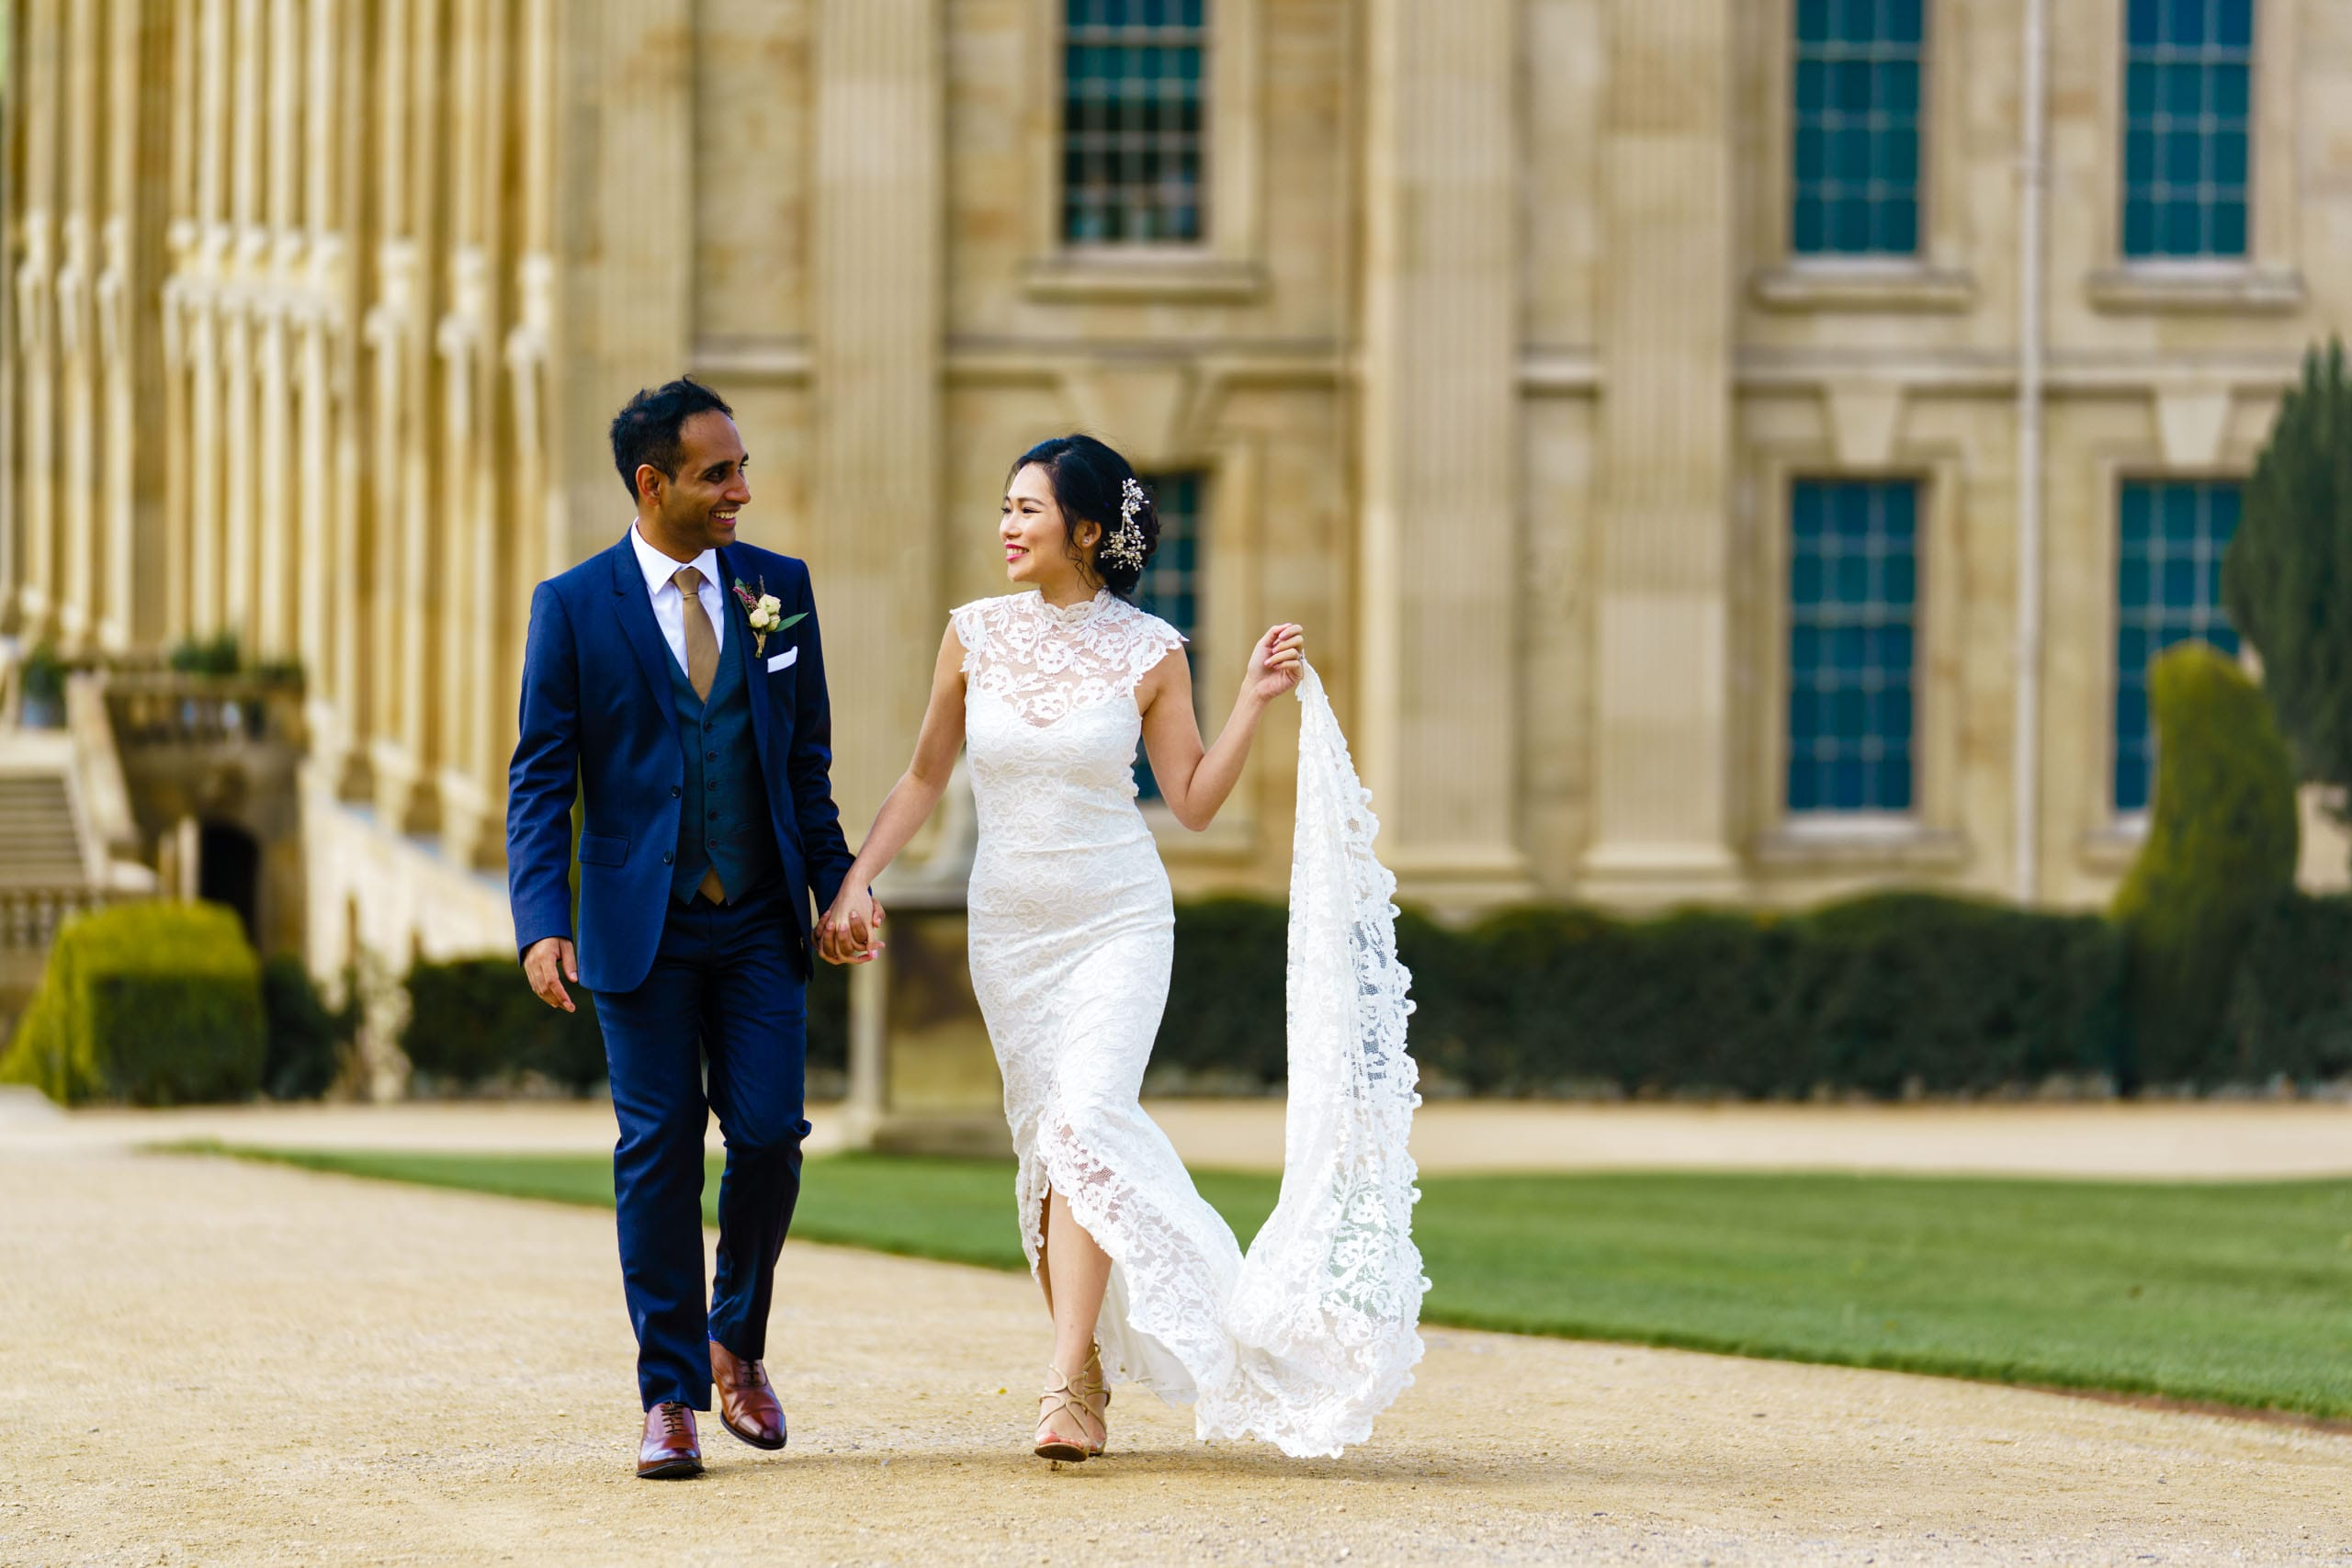 Newlywed Bride & Groom walking hand in hand with Chatsworth House behind them